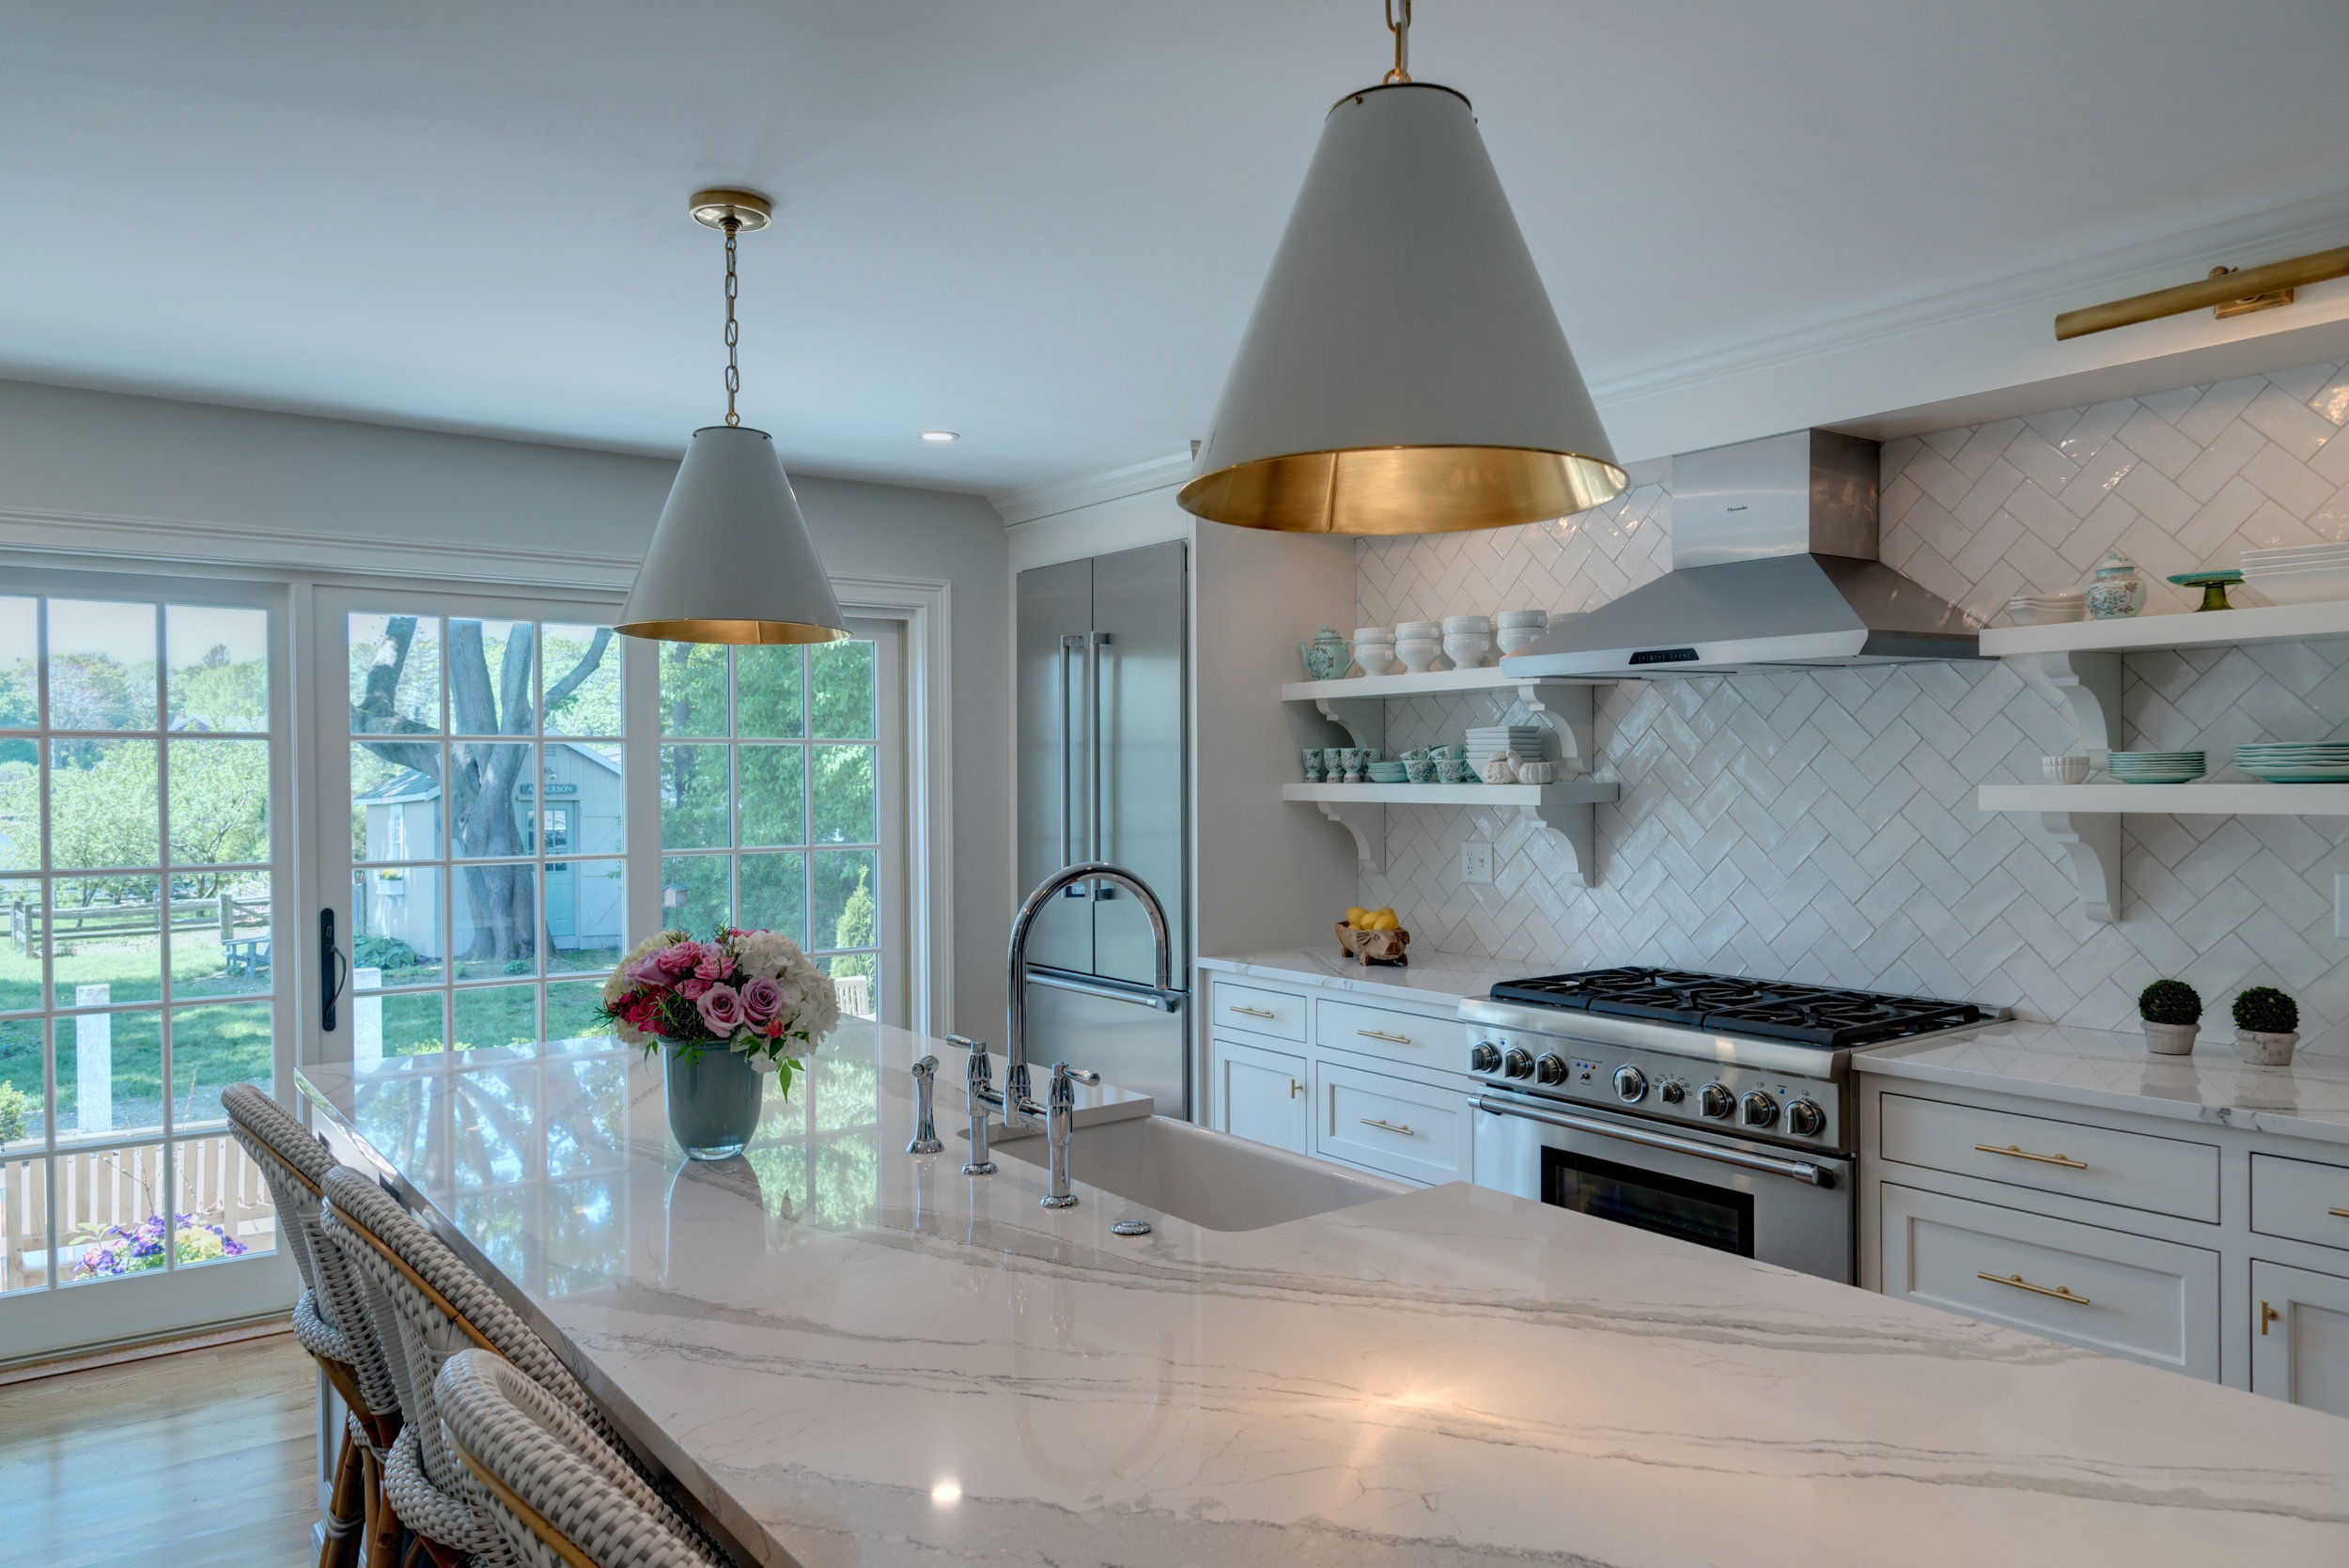 Residence in Cohasset.